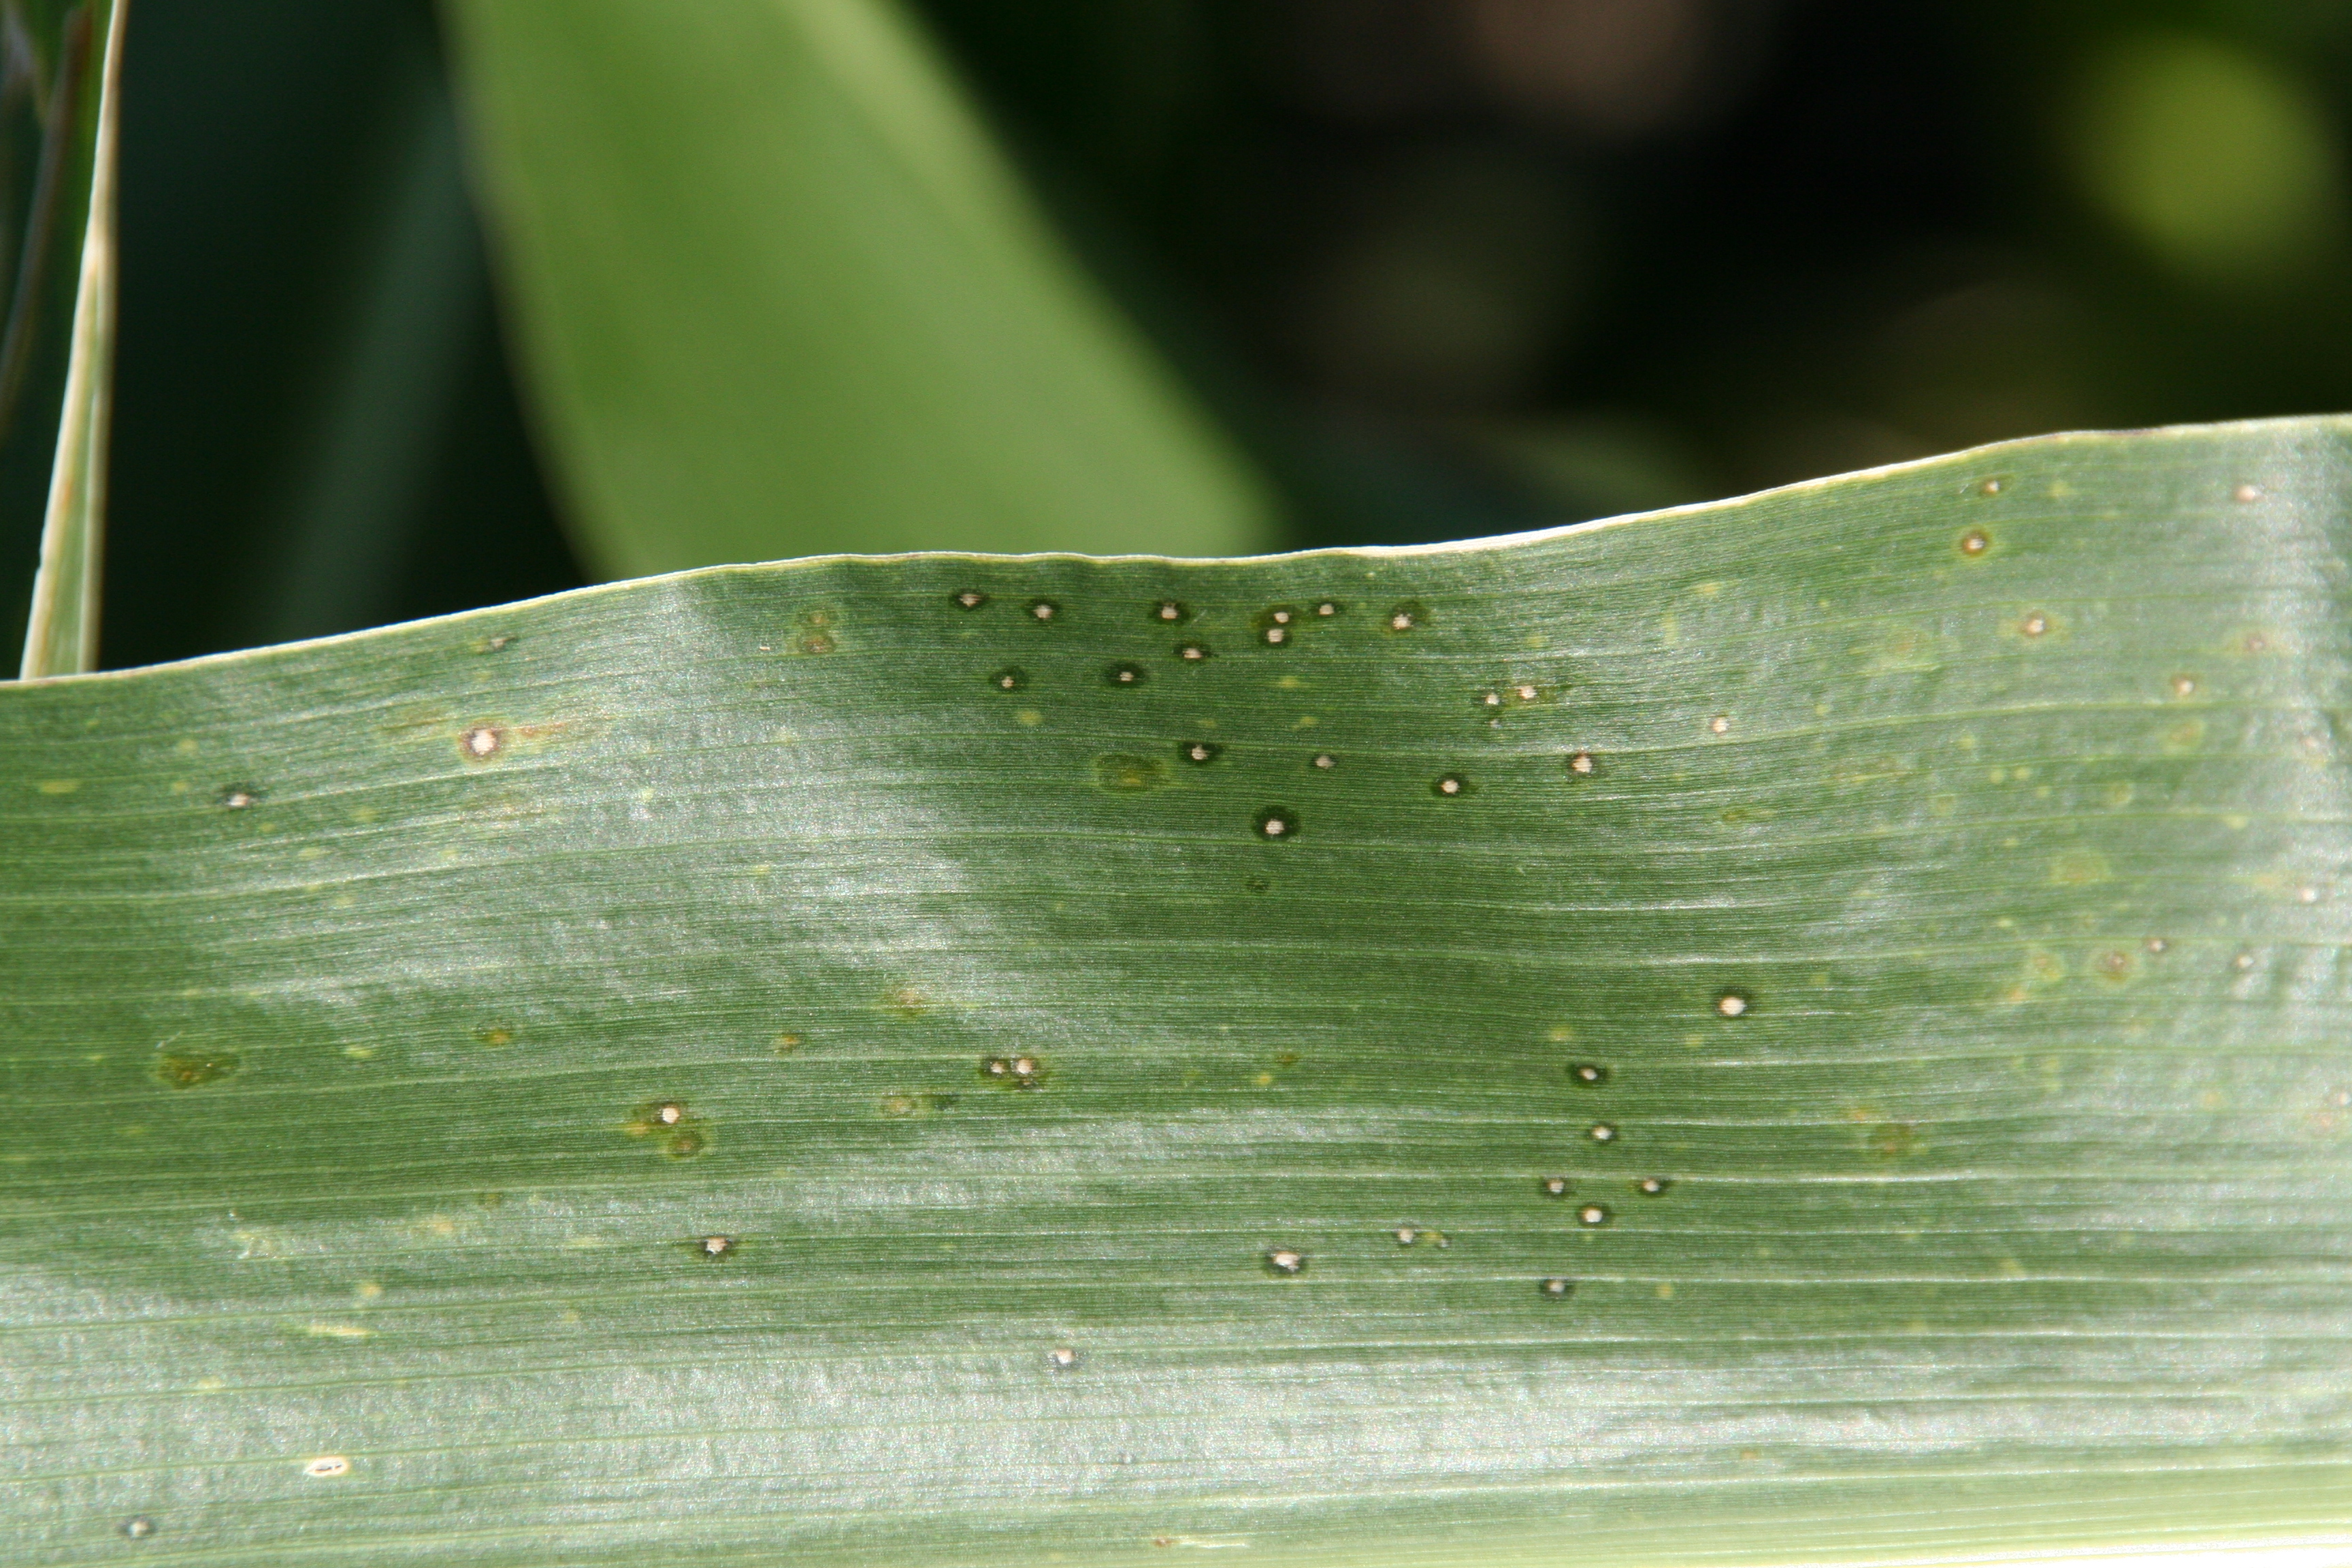 Initial symptoms of eyespot are small, water-soaked or chlorotic circular spots on leaves.